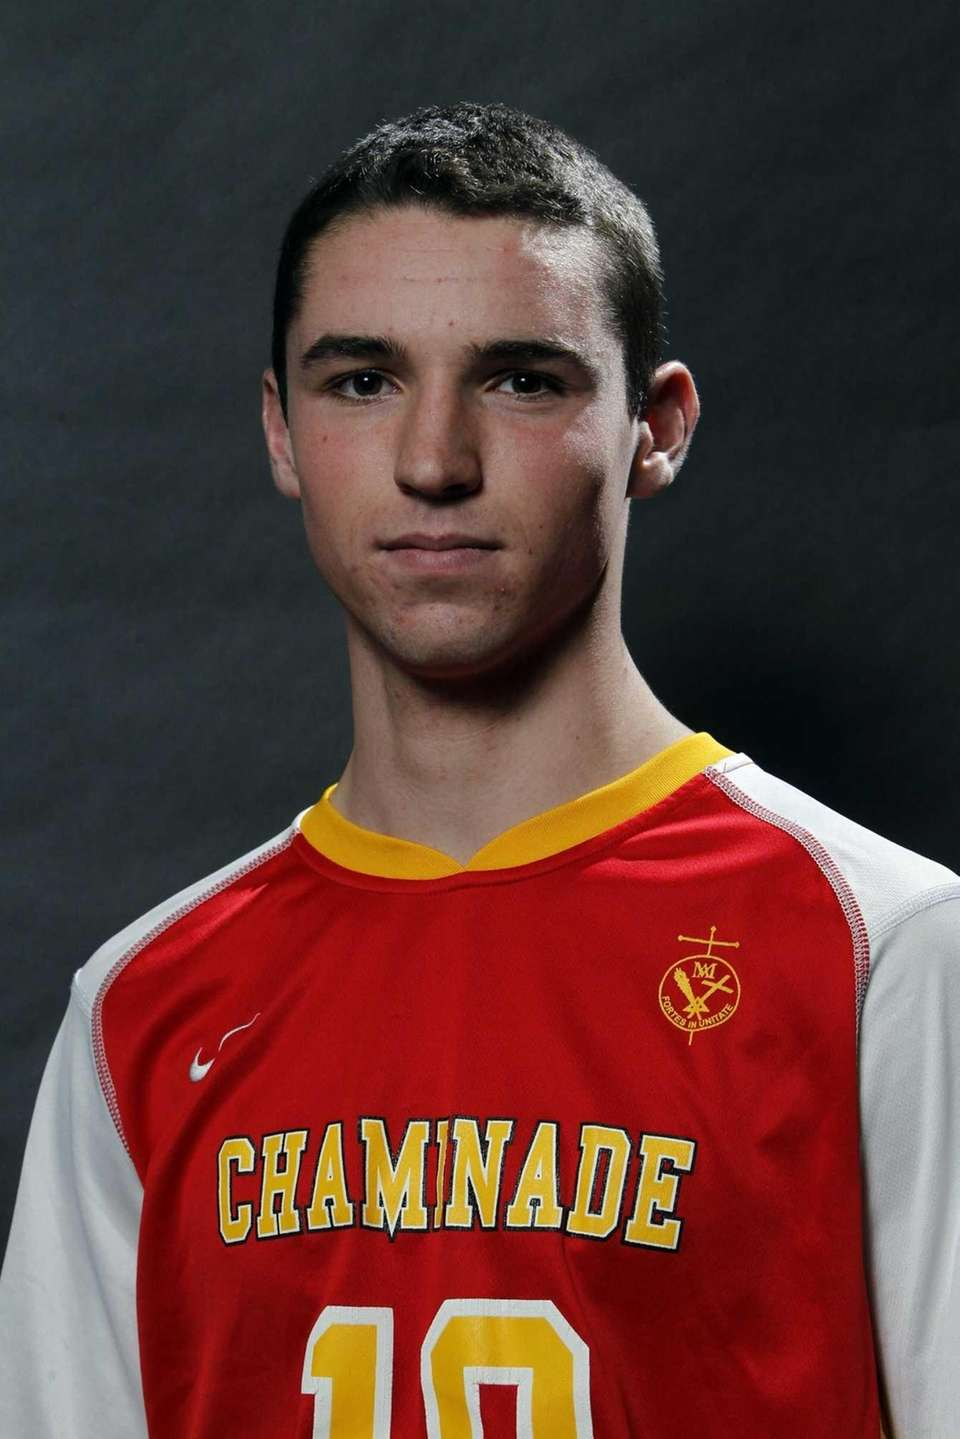 KEVIN MERCADANTE Chaminade, Midfielder, Senior Mercadante is good